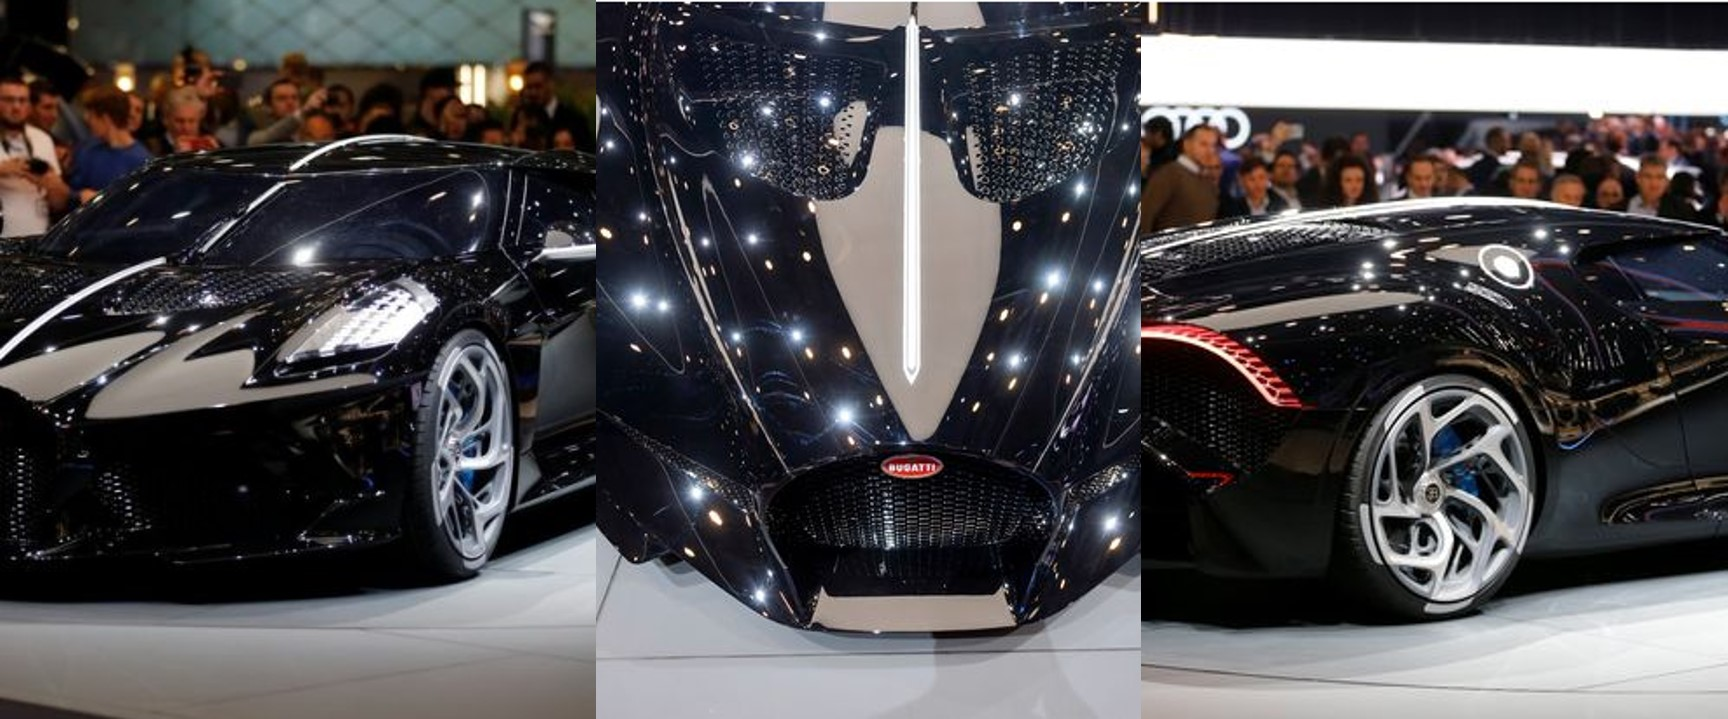 Bugatti unveils world's most expensive luxury car (Photos)